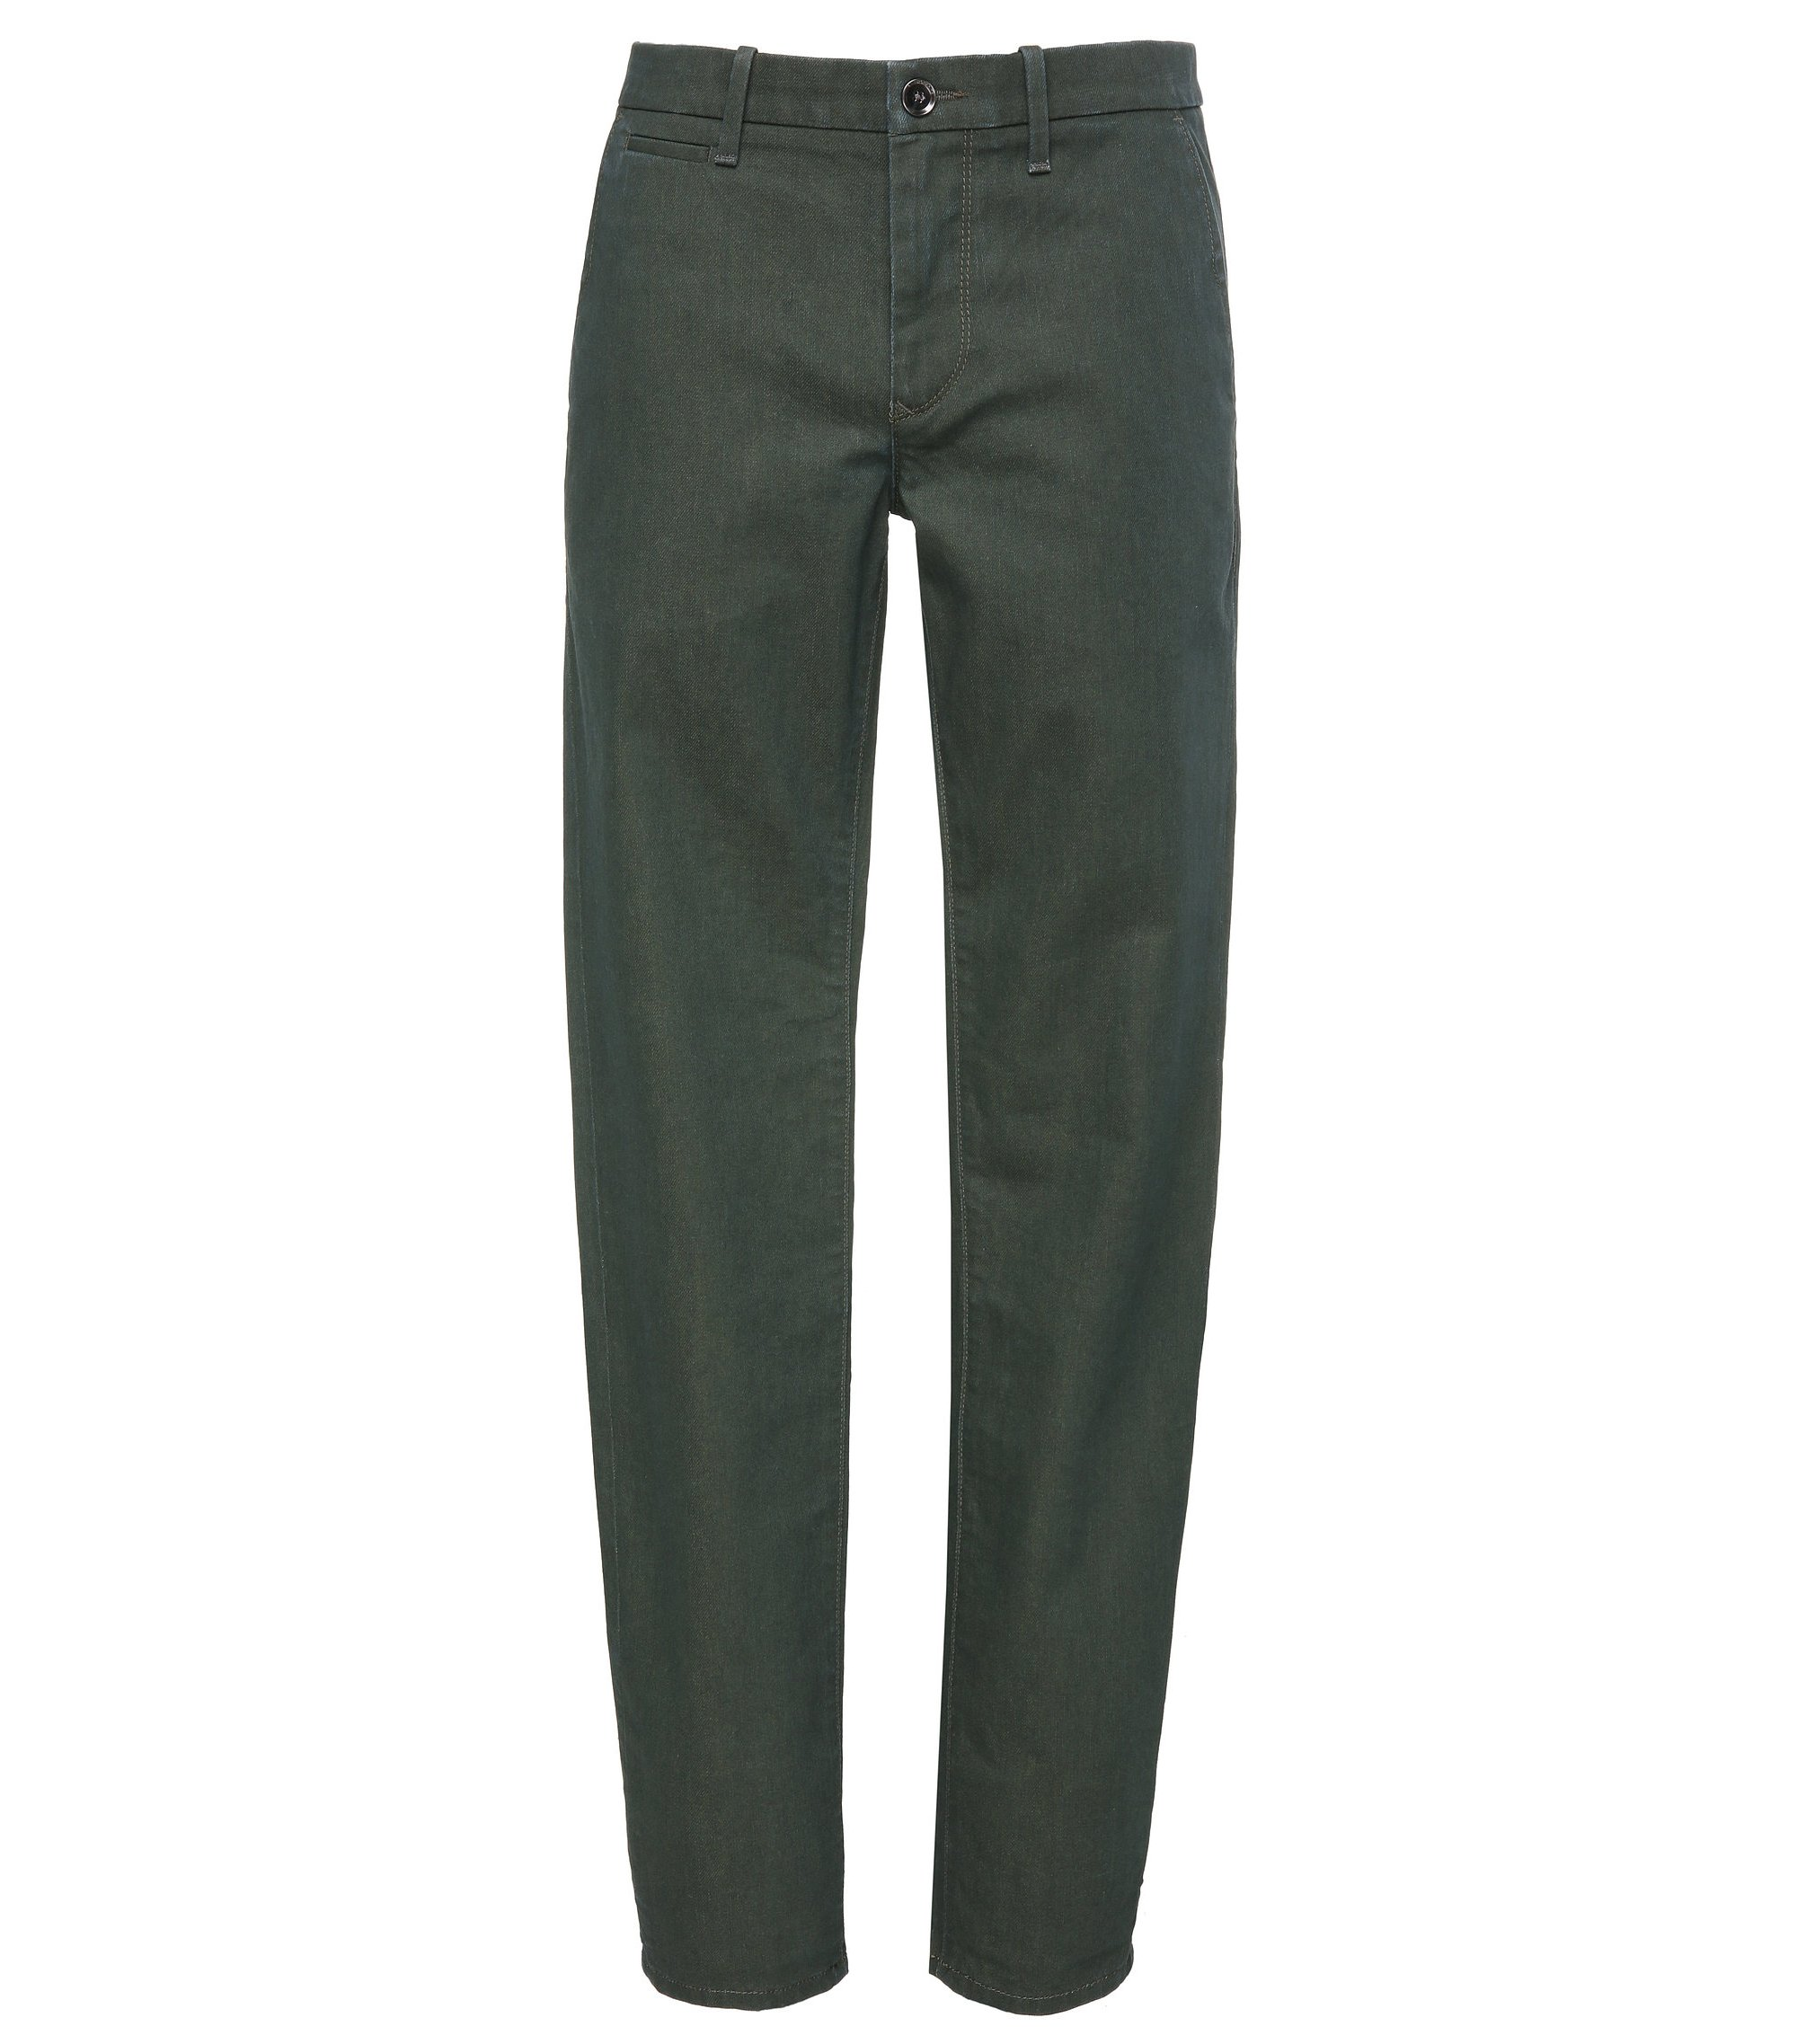 Stretch Cotton Denim Pant, Slim Fit | Orange Chester, Dark Green